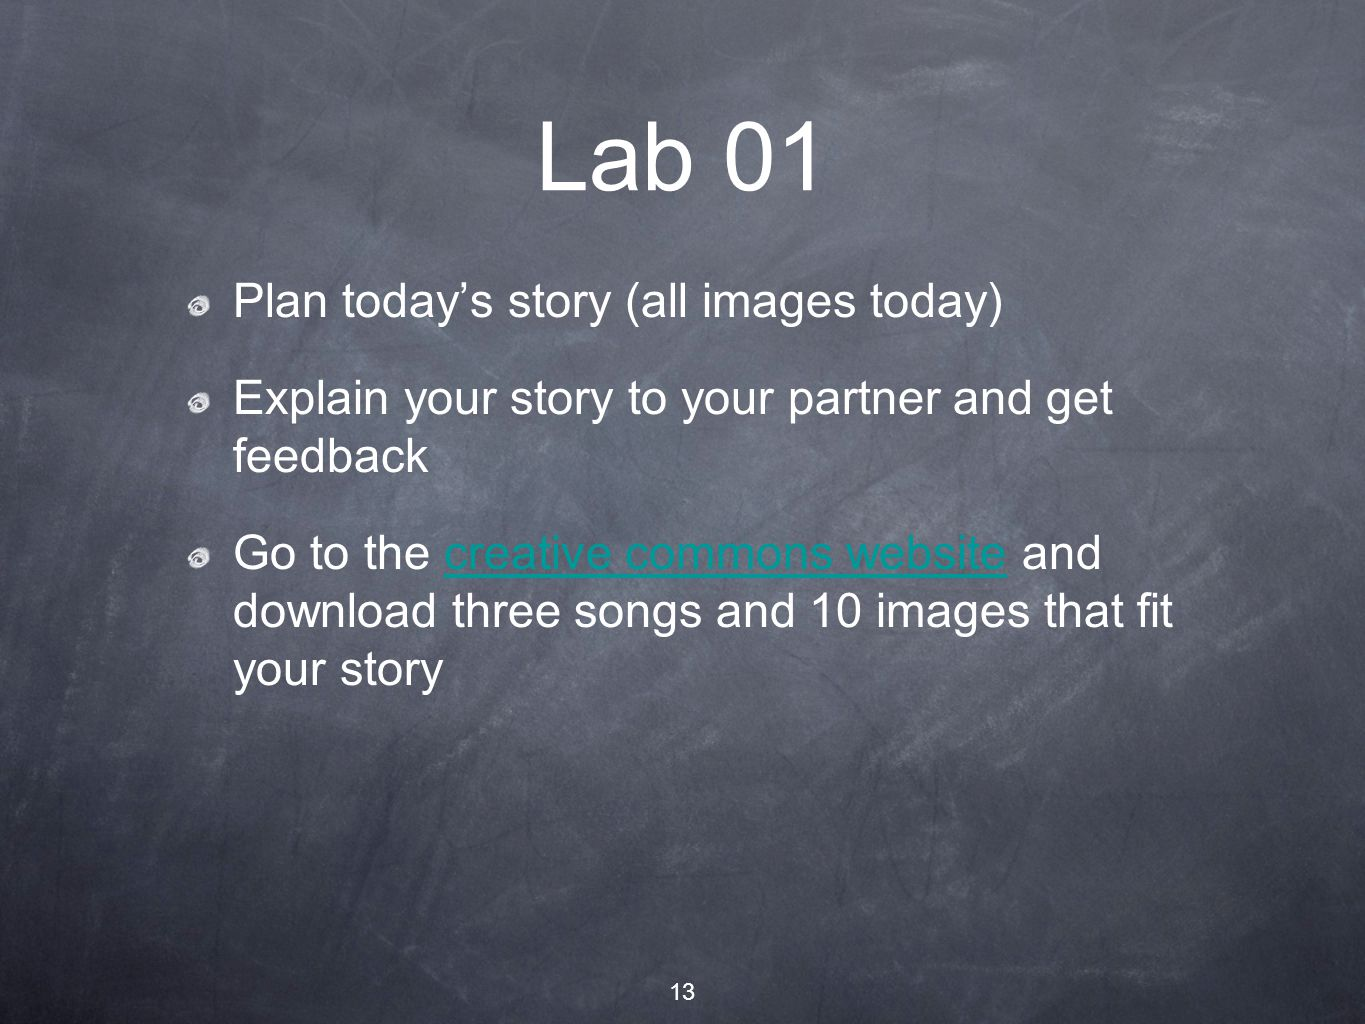 13 Lab 01 Plan today's story (all images today) Explain your story to your partner and get feedback Go to the creative commons website and download three songs and 10 images that fit your storycreative commons website